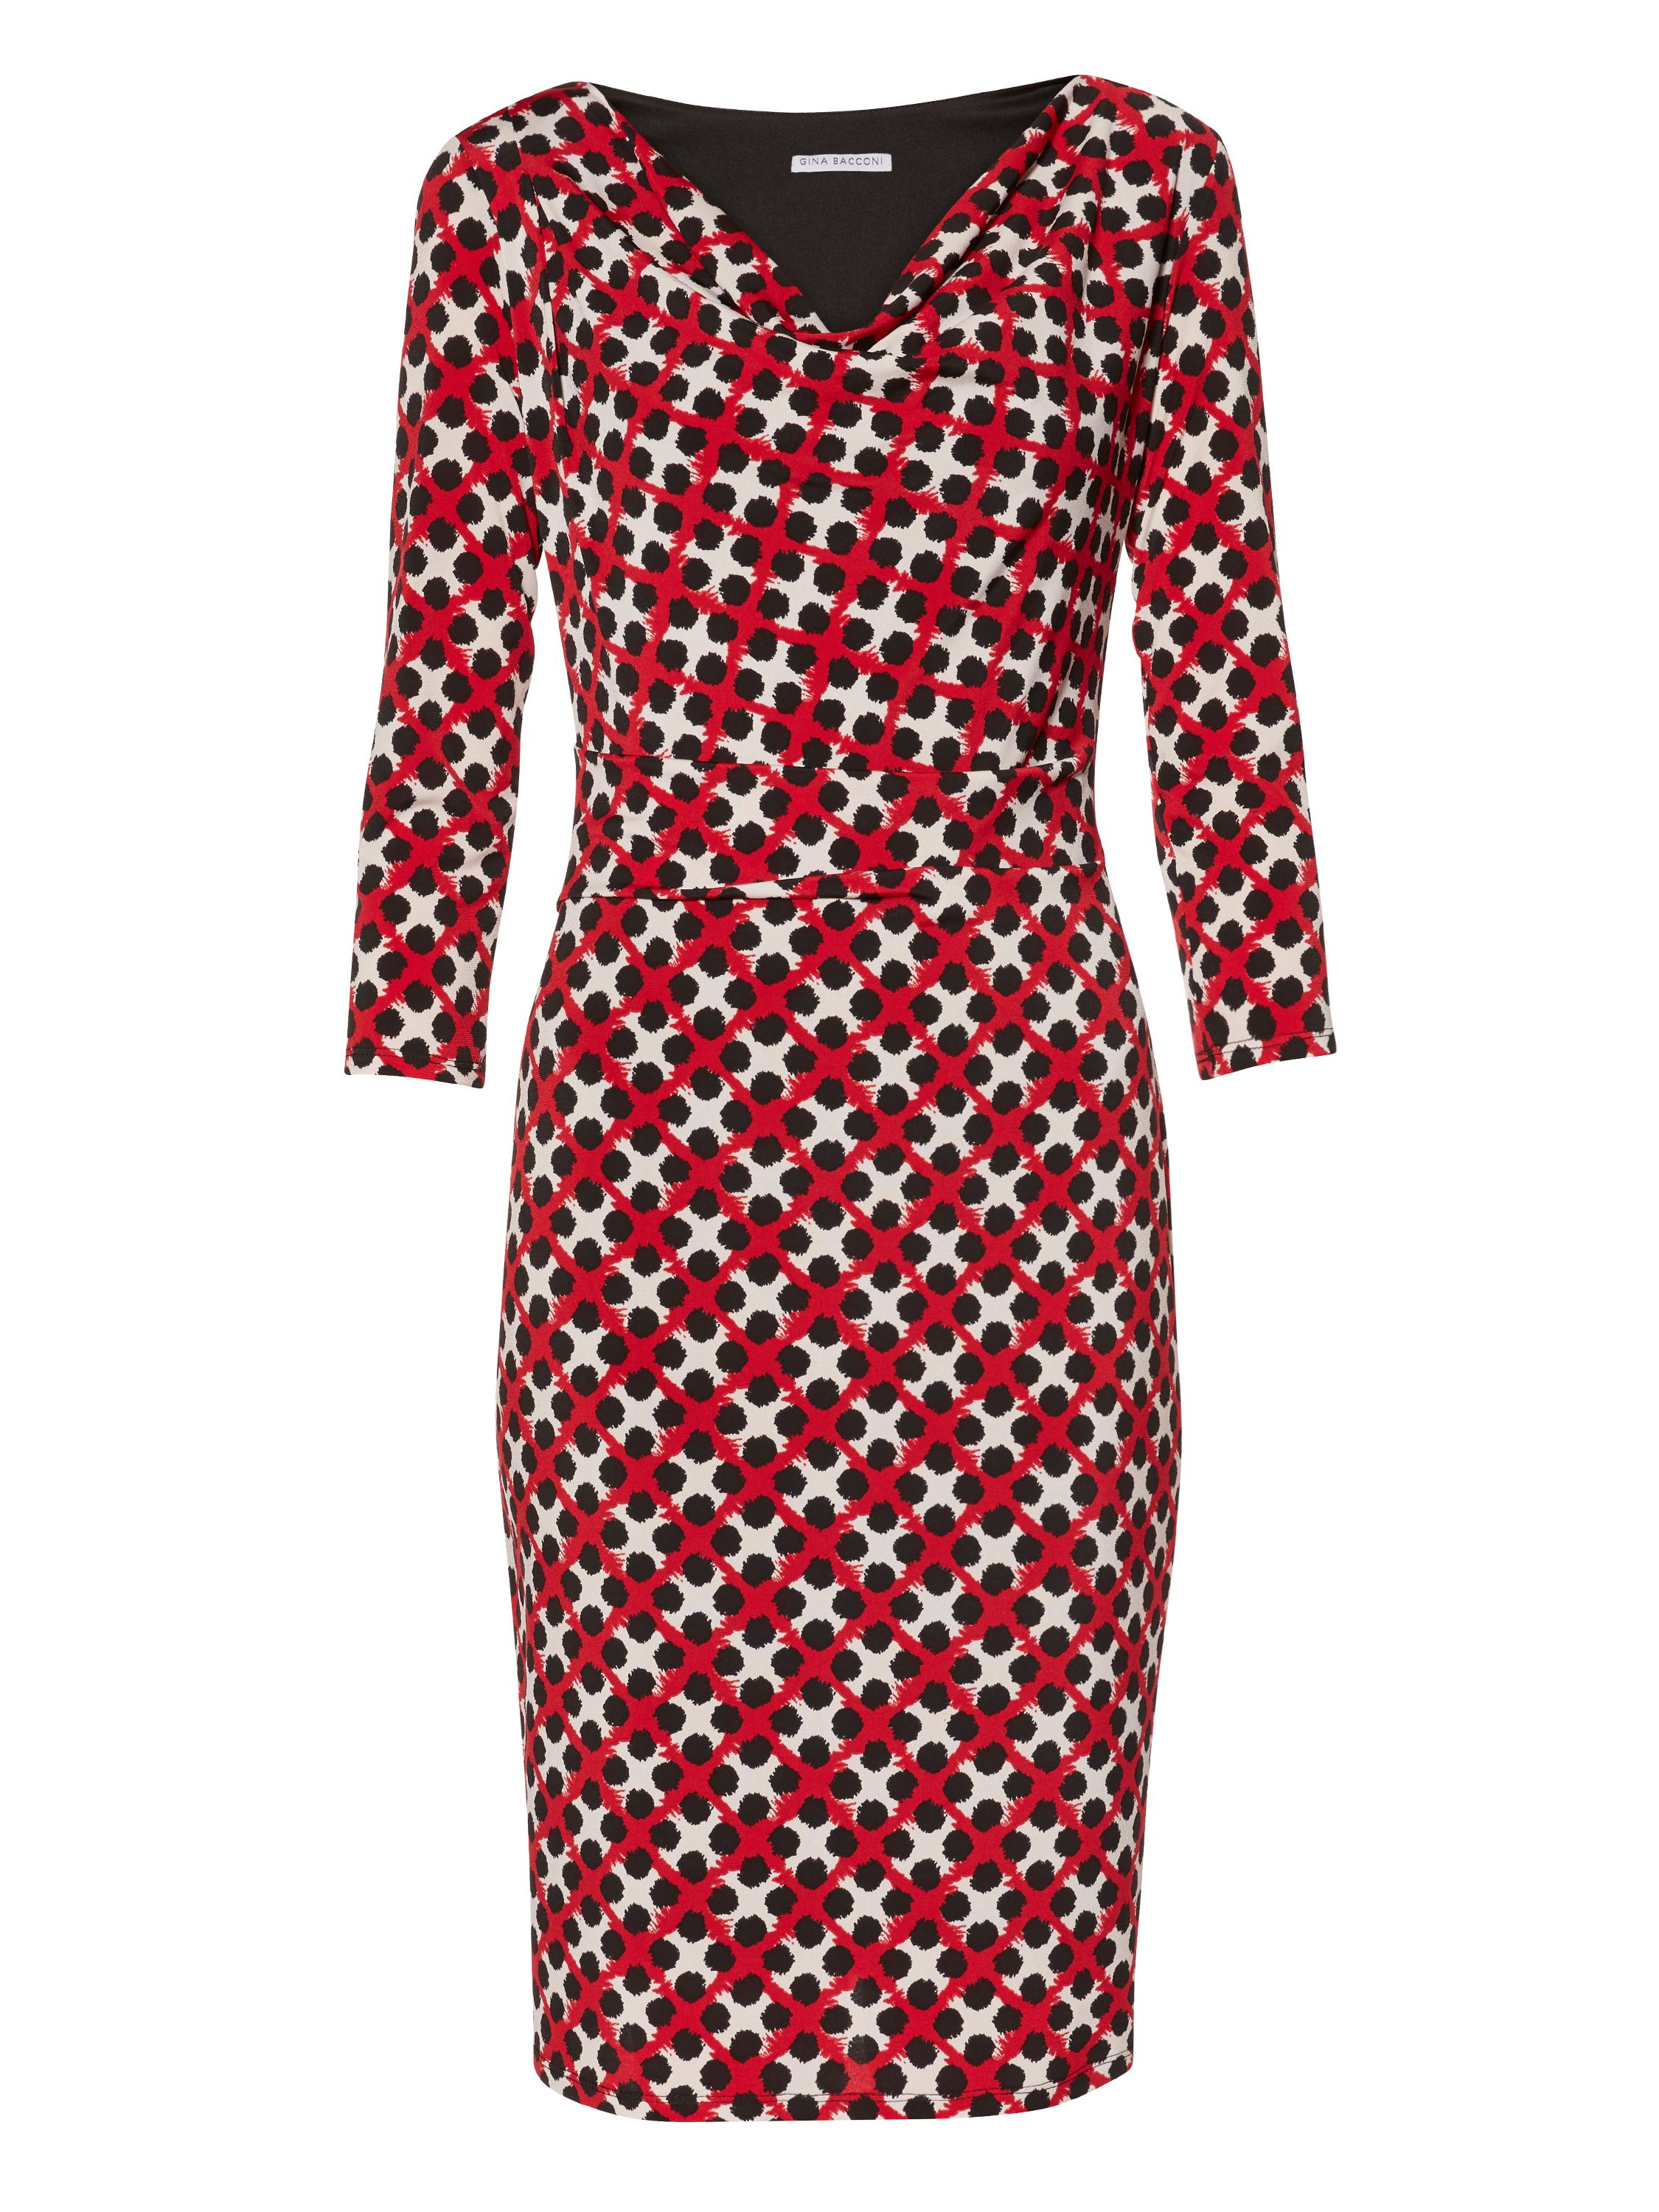 Gina Bacconi Check And Spot Print Jersey Dress, Red